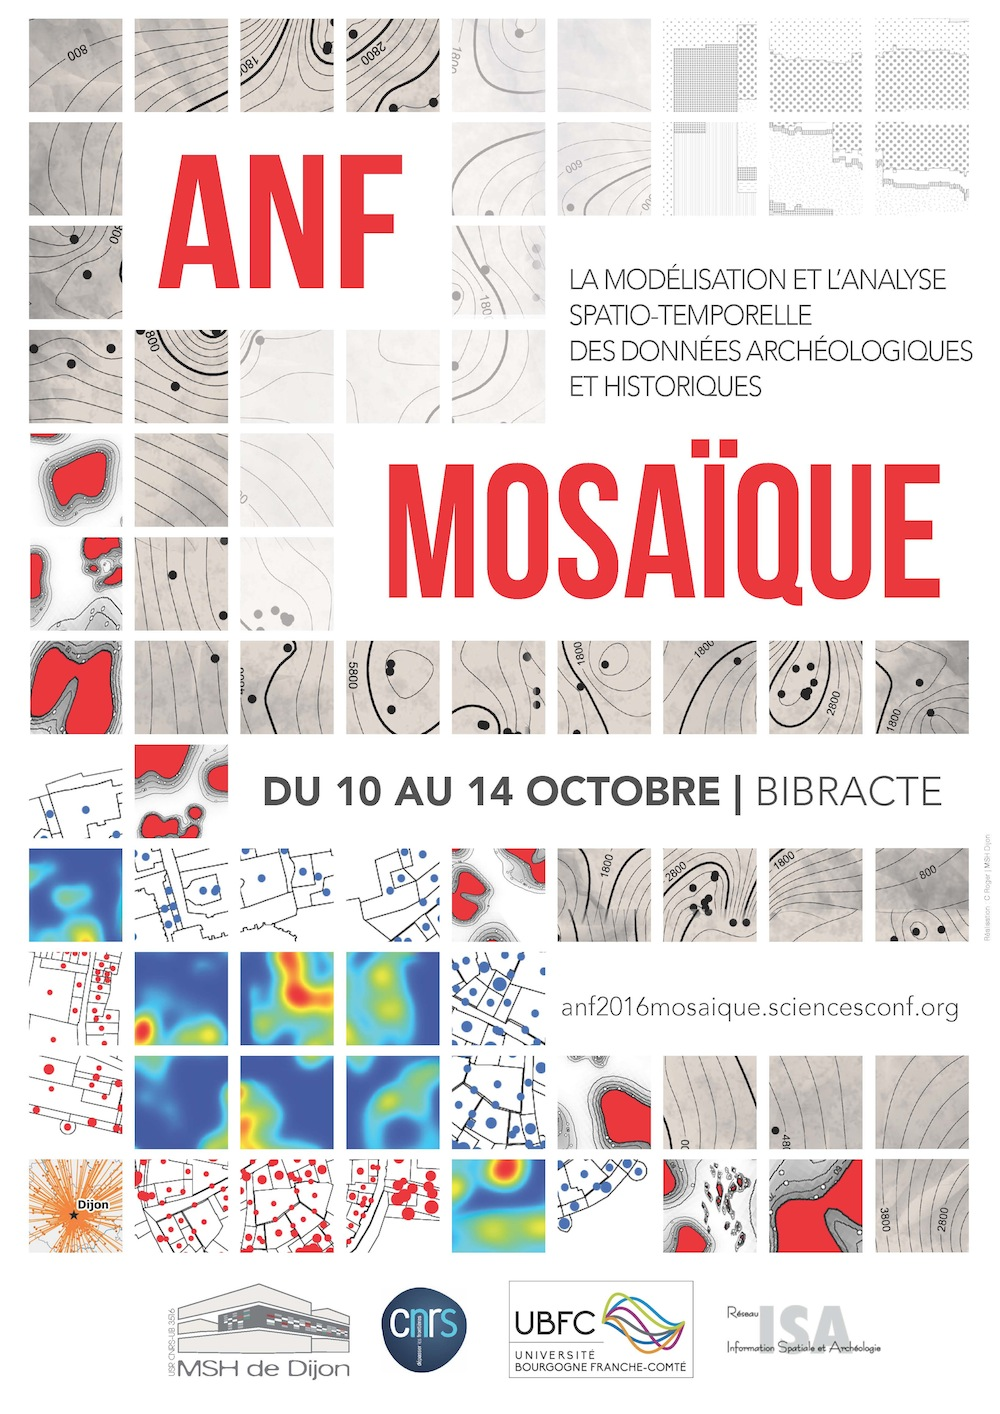 ANF mosaique affiche copie